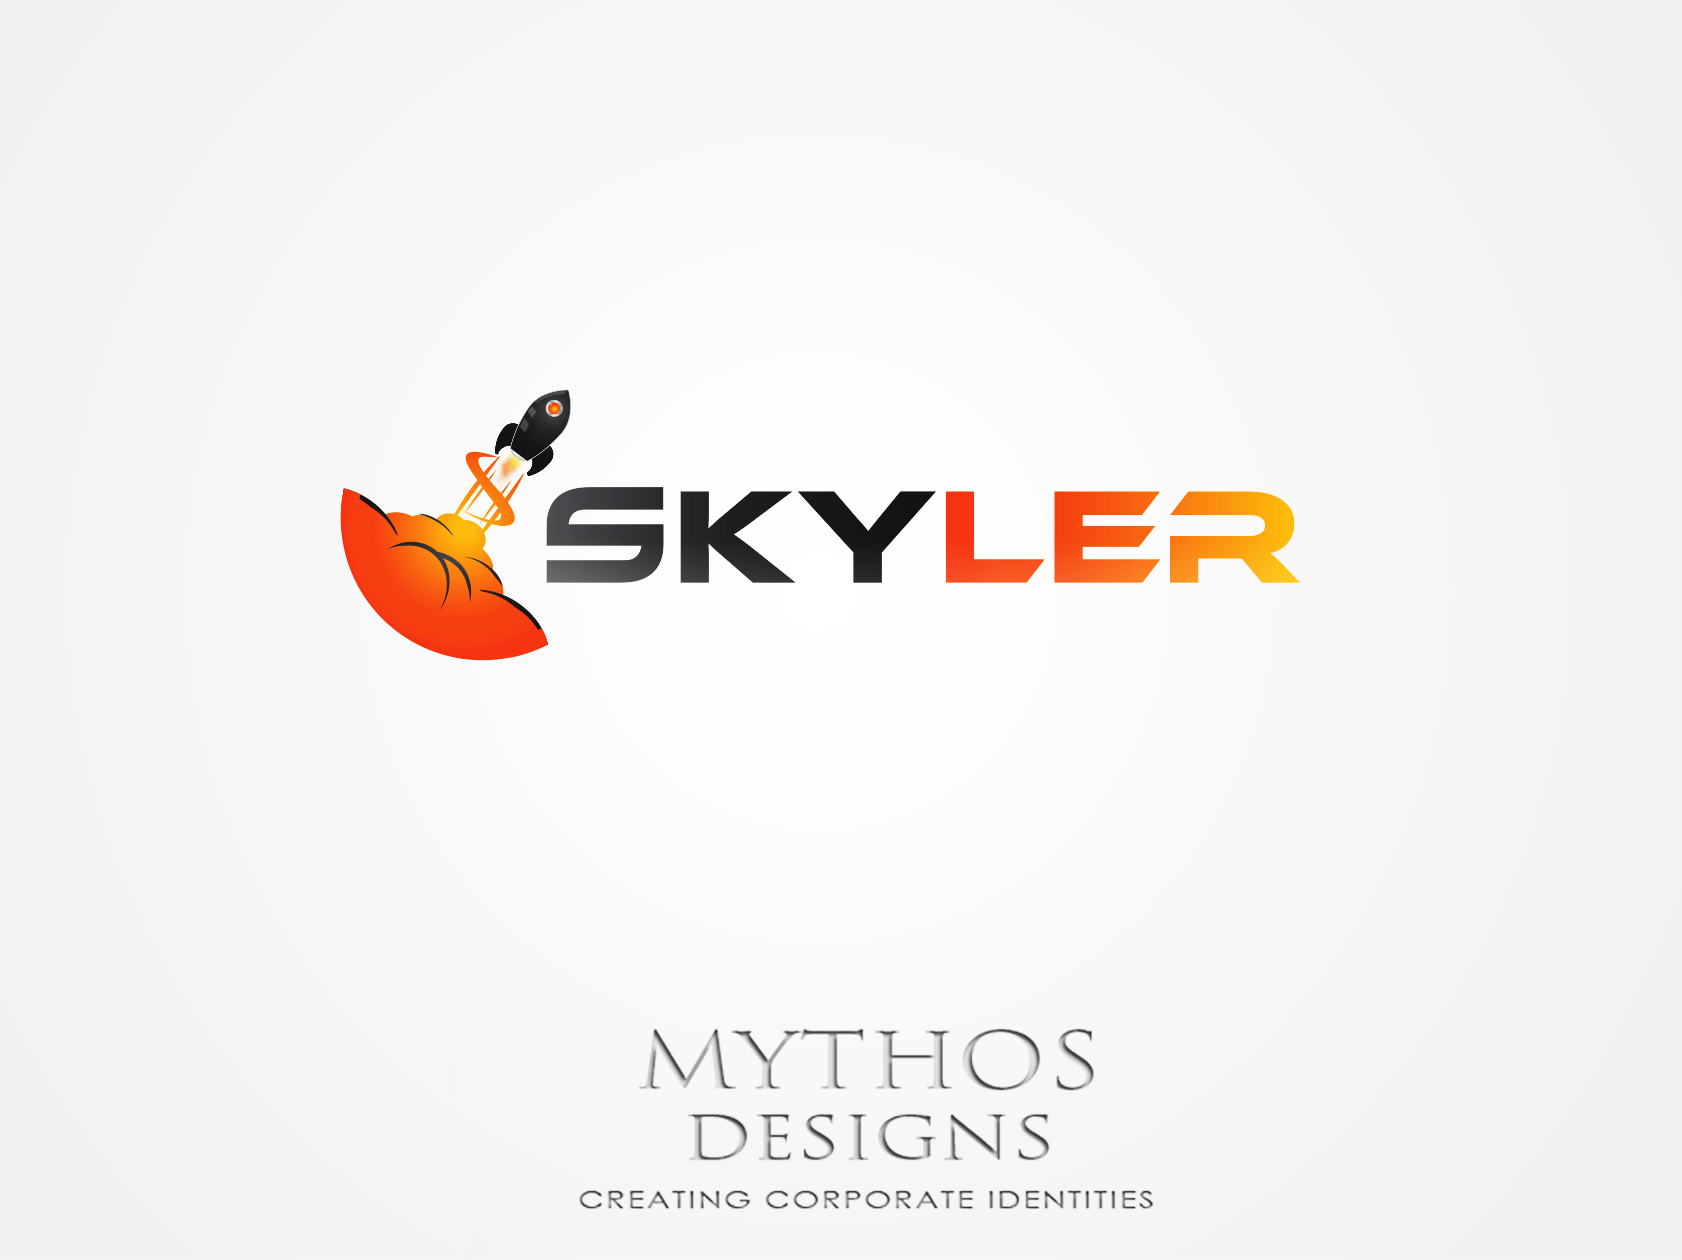 Logo Design by Mythos Designs - Entry No. 77 in the Logo Design Contest Artistic Logo Design for Skyler.Asia.